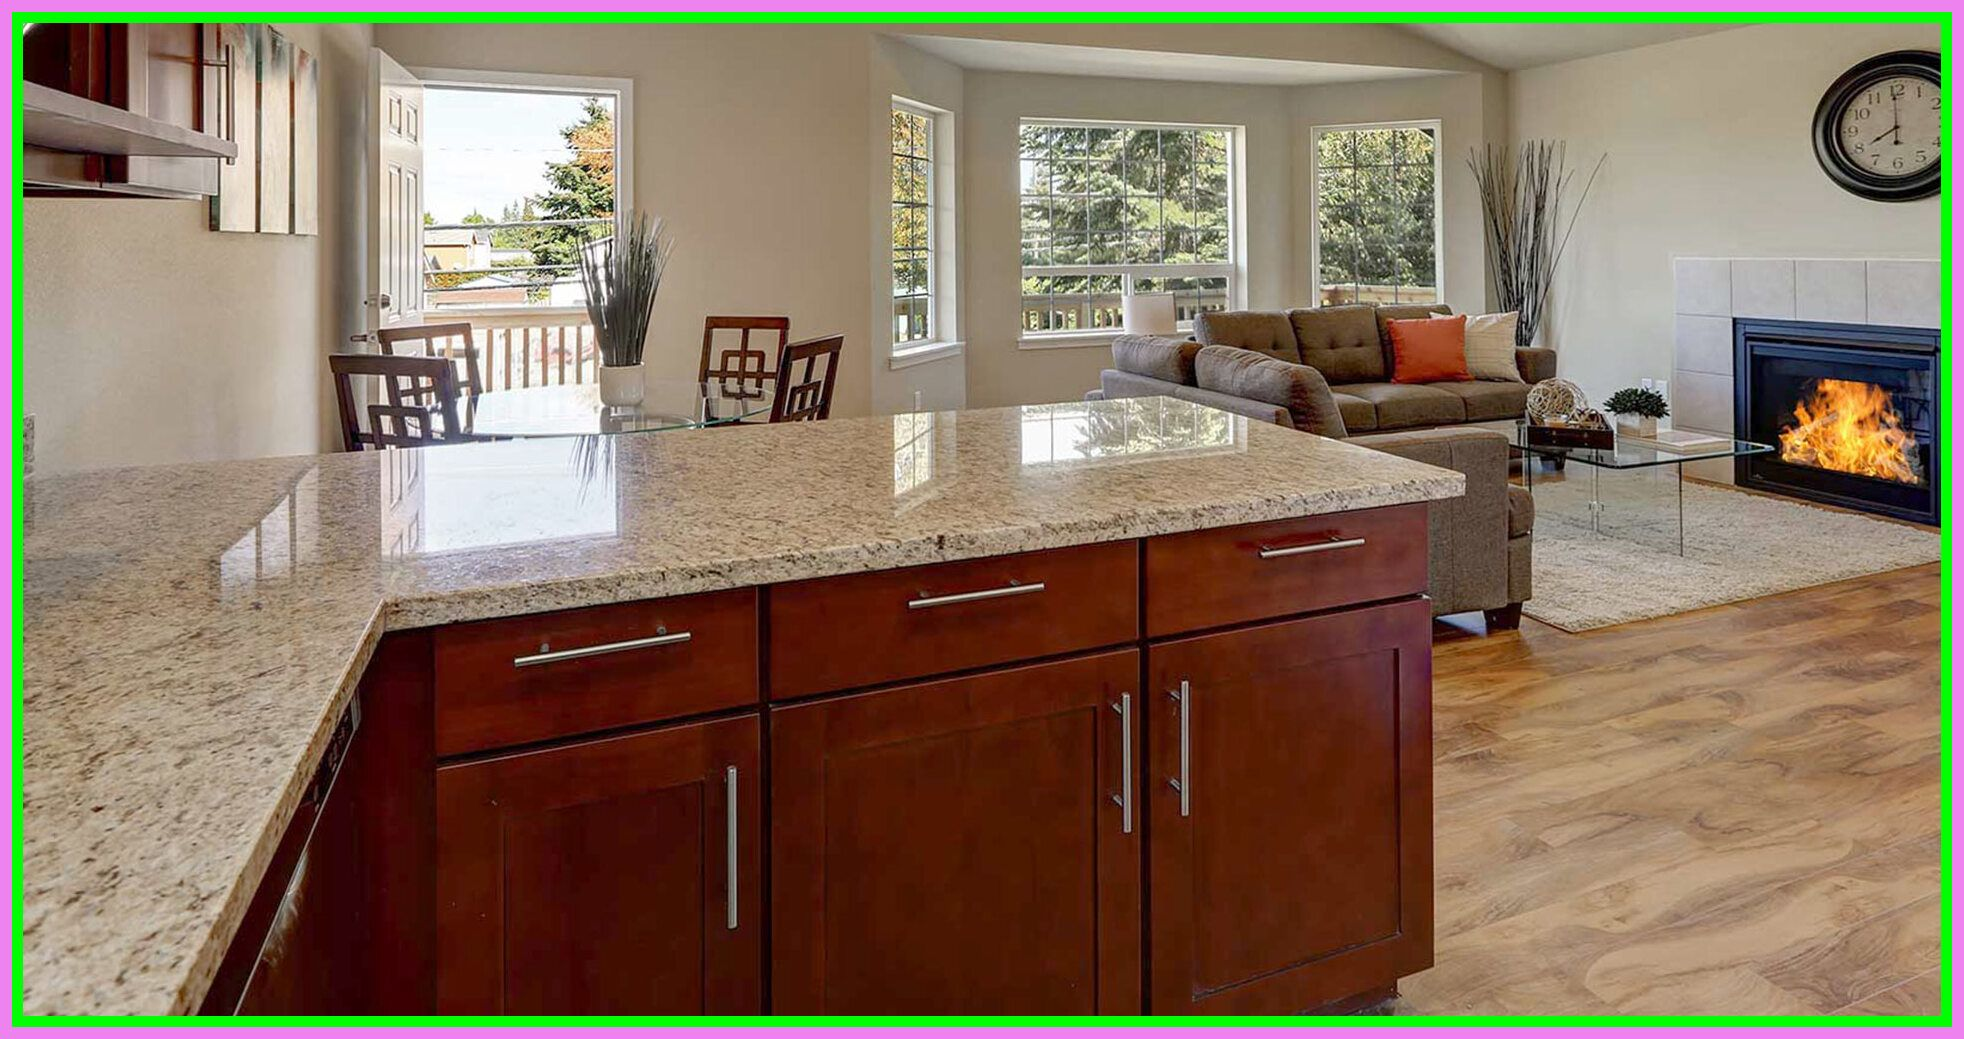 77 Reference Of Granite Countertops Care Upkeep In 2020 Granite Countertops Countertops Bathroom Interior Decorating